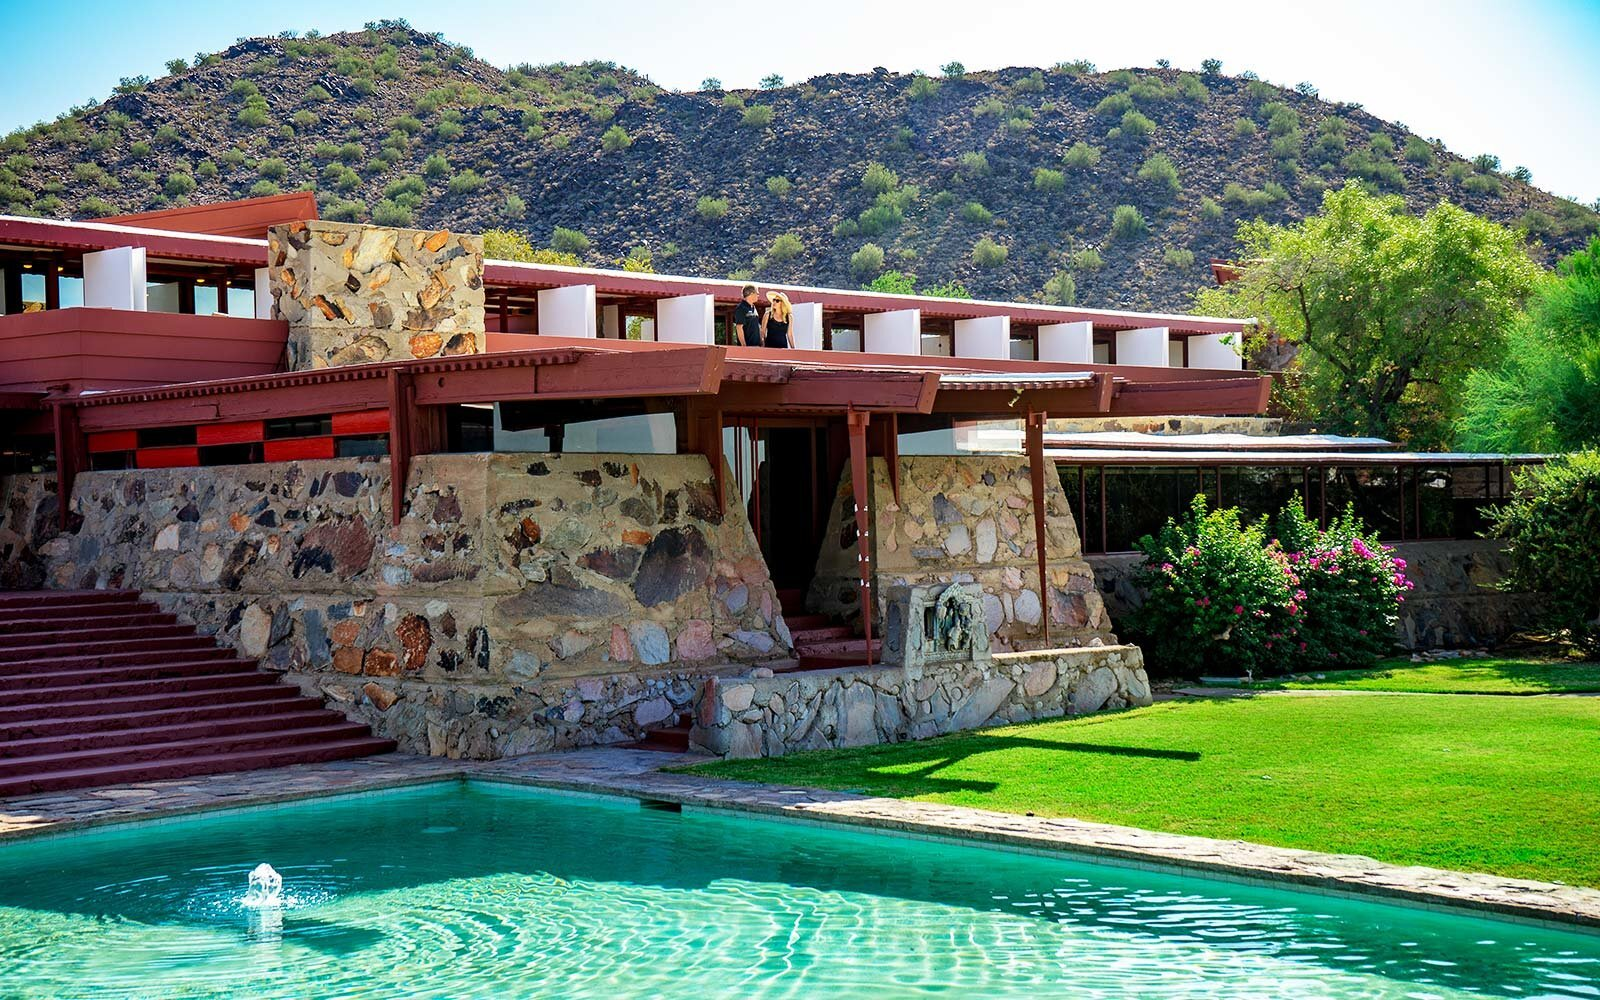 10 Must-See Houses Designed by Architect Frank Lloyd Wright | Travel